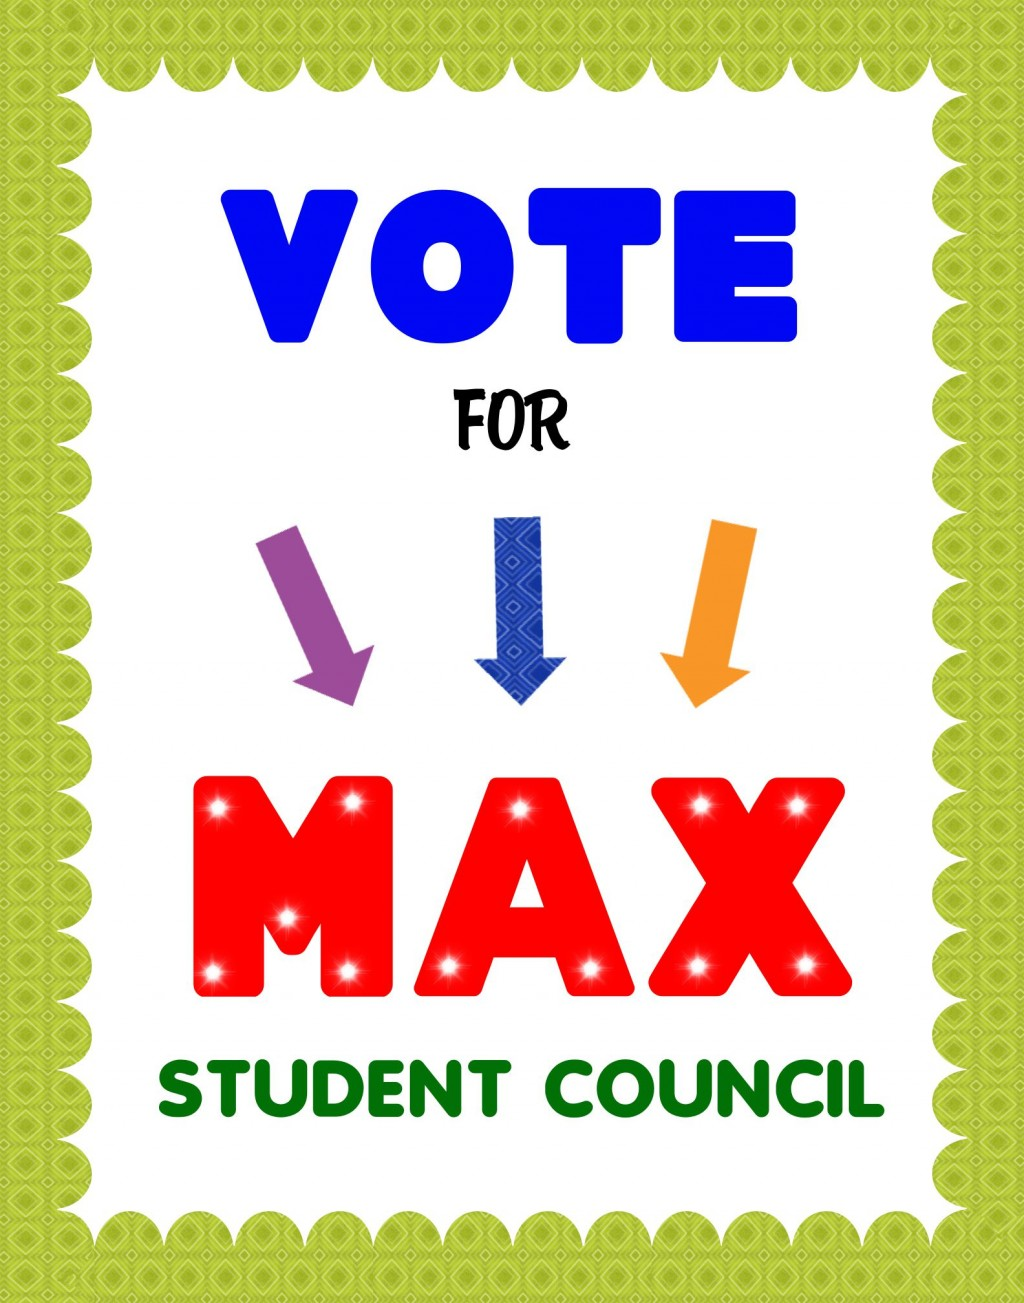 002 Outstanding Free Student Council Campaign Poster Template Sample Large